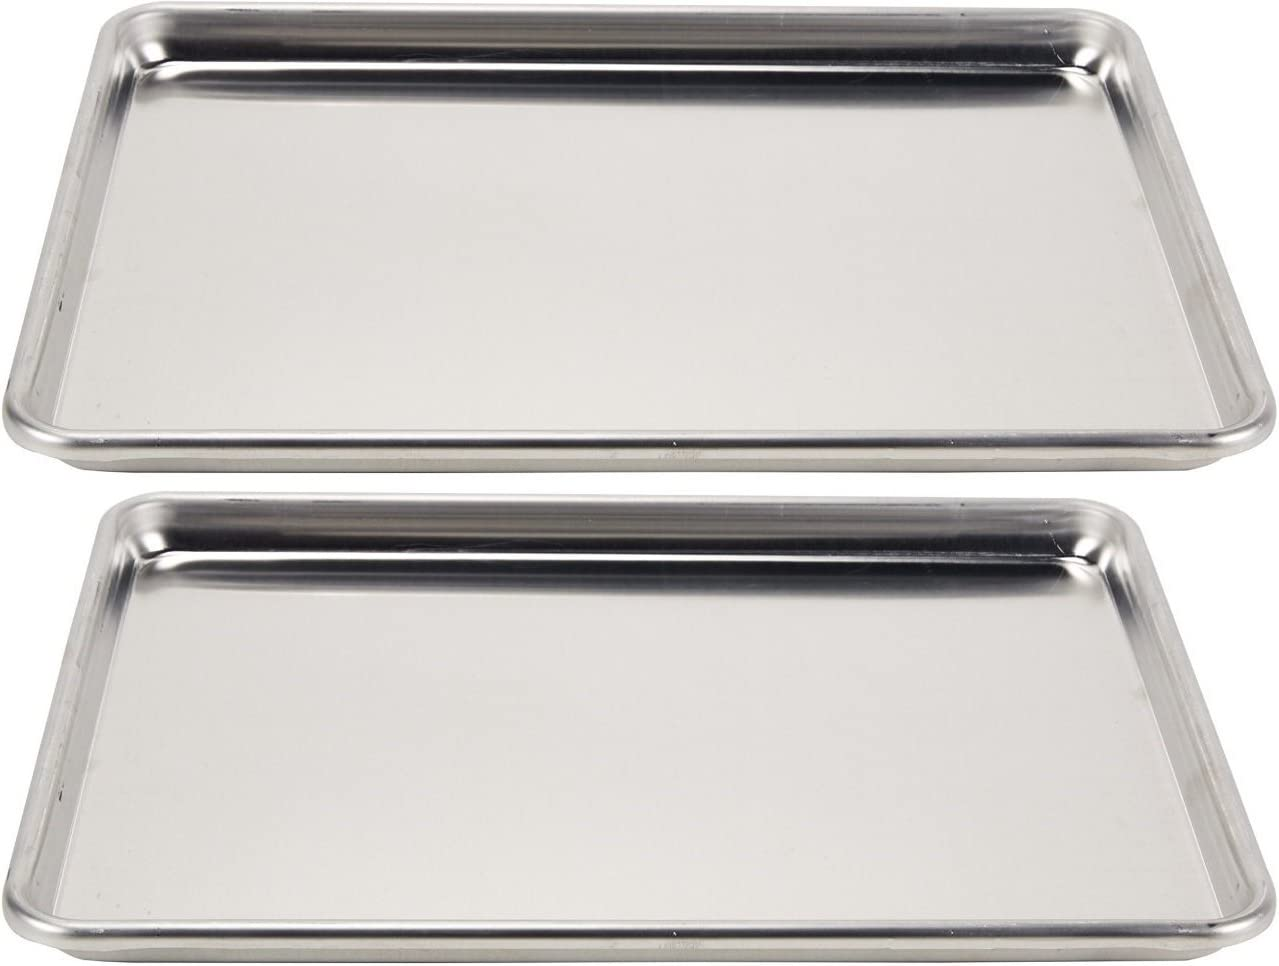 5314 Vollrath Wear-Ever Collection Half-Size Sheet Pans Set of 2 18-Inch x 13-Inch, Aluminum